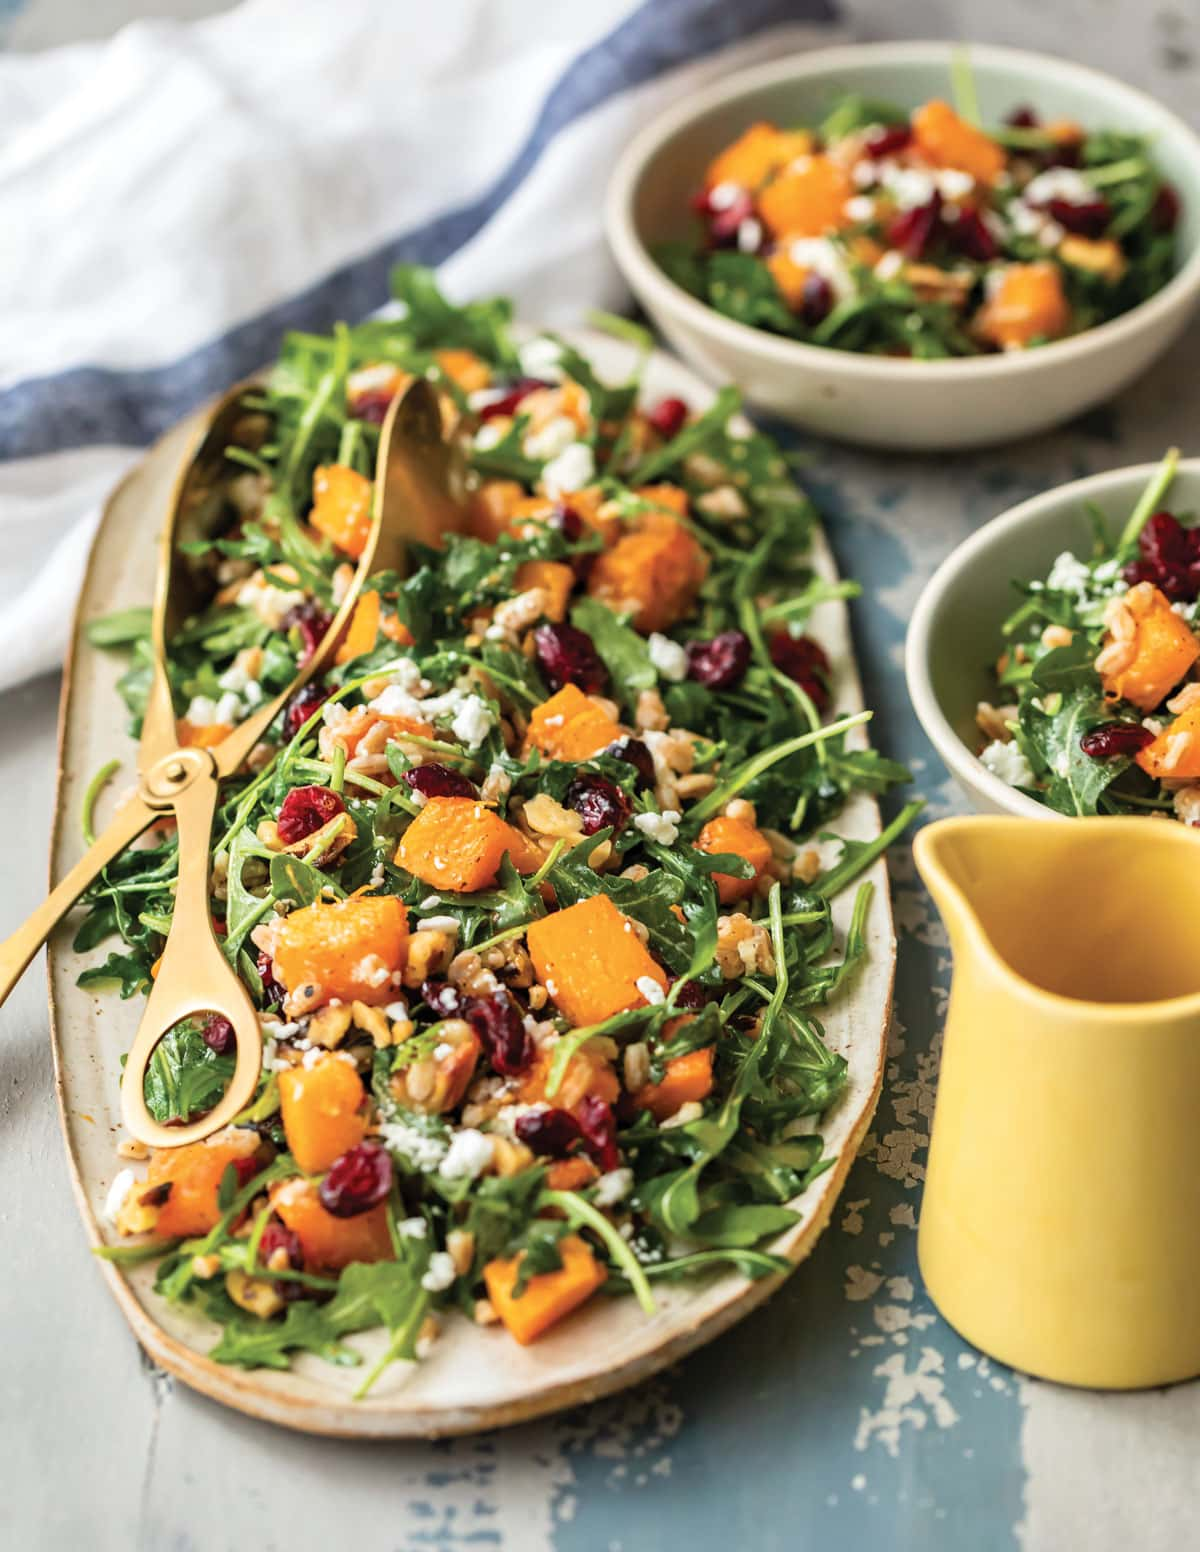 Maple Roasted Butternut Squash Salad from the Well Plated Cookbook